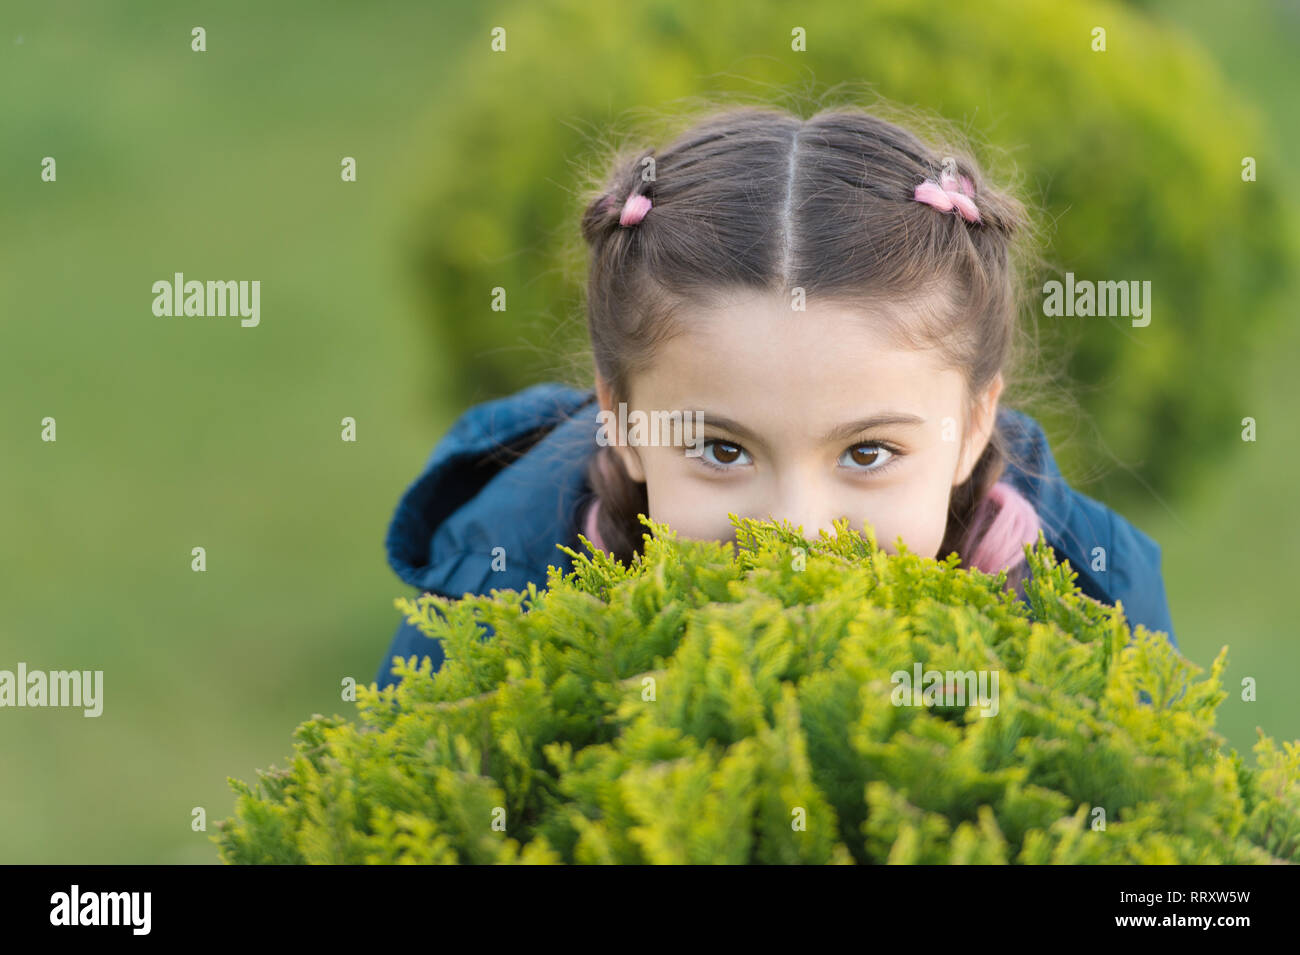 Girl cute kid green grass background. Healthy emotional happy kid relaxing outdoors. What makes child happy. Girl braids hairstyle enjoy relax. Happy hiding game outdoors. Play hide and seek. - Stock Image